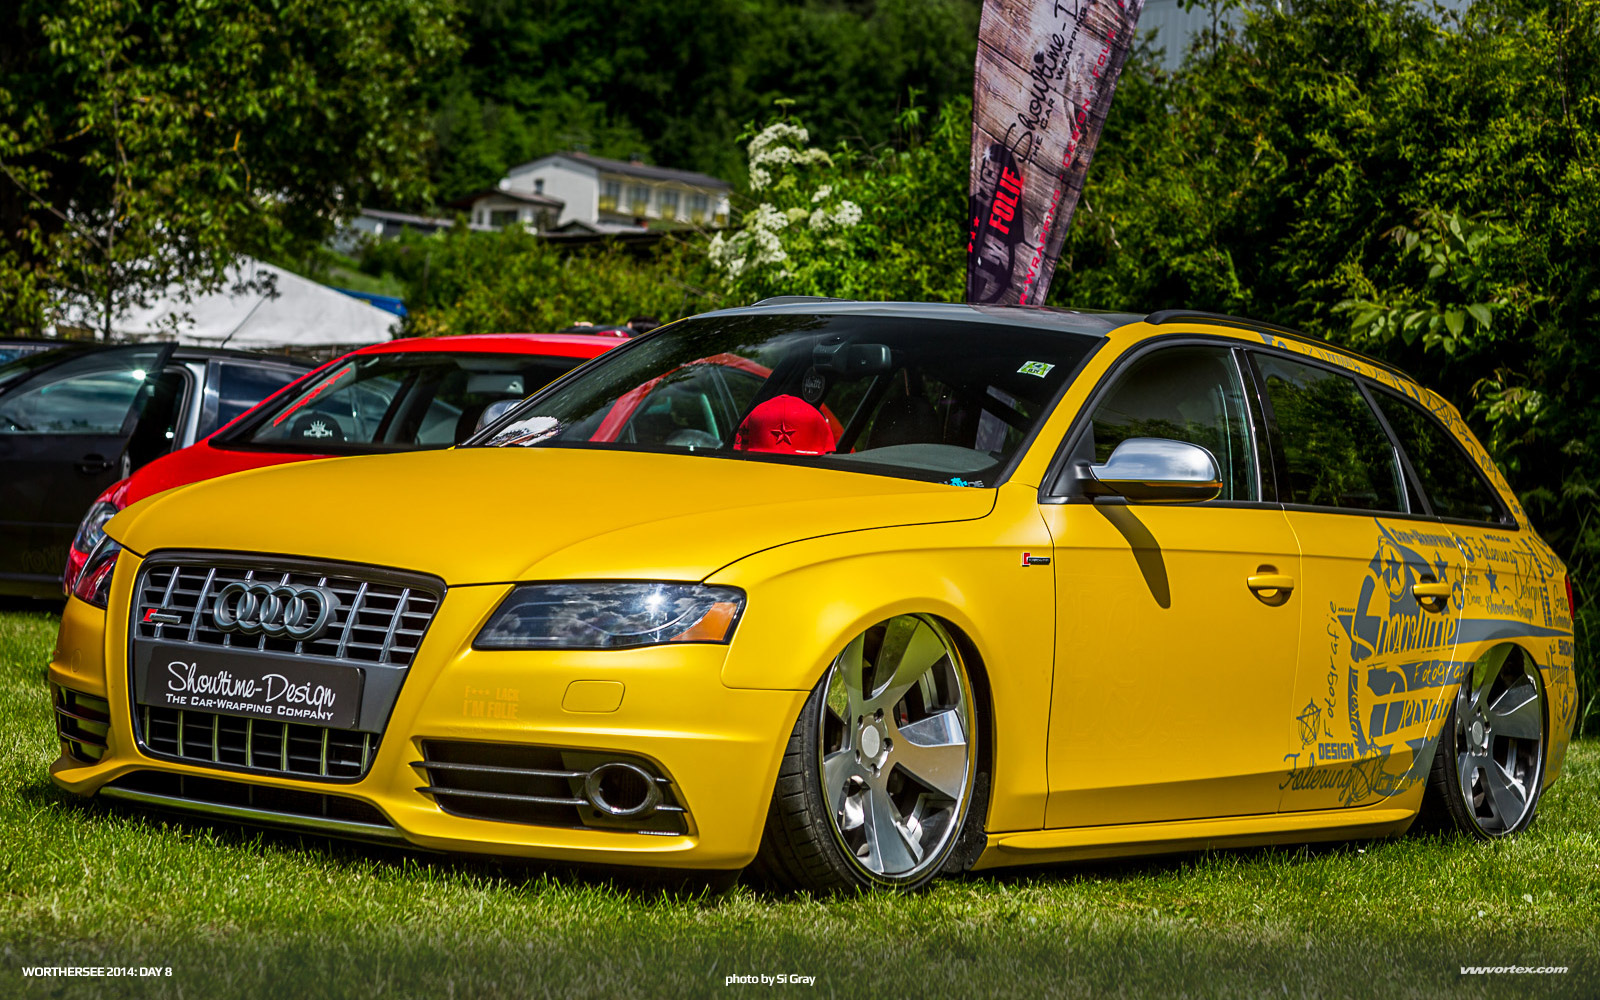 2014-Worthersee-Day-8-Si-Gray-1098